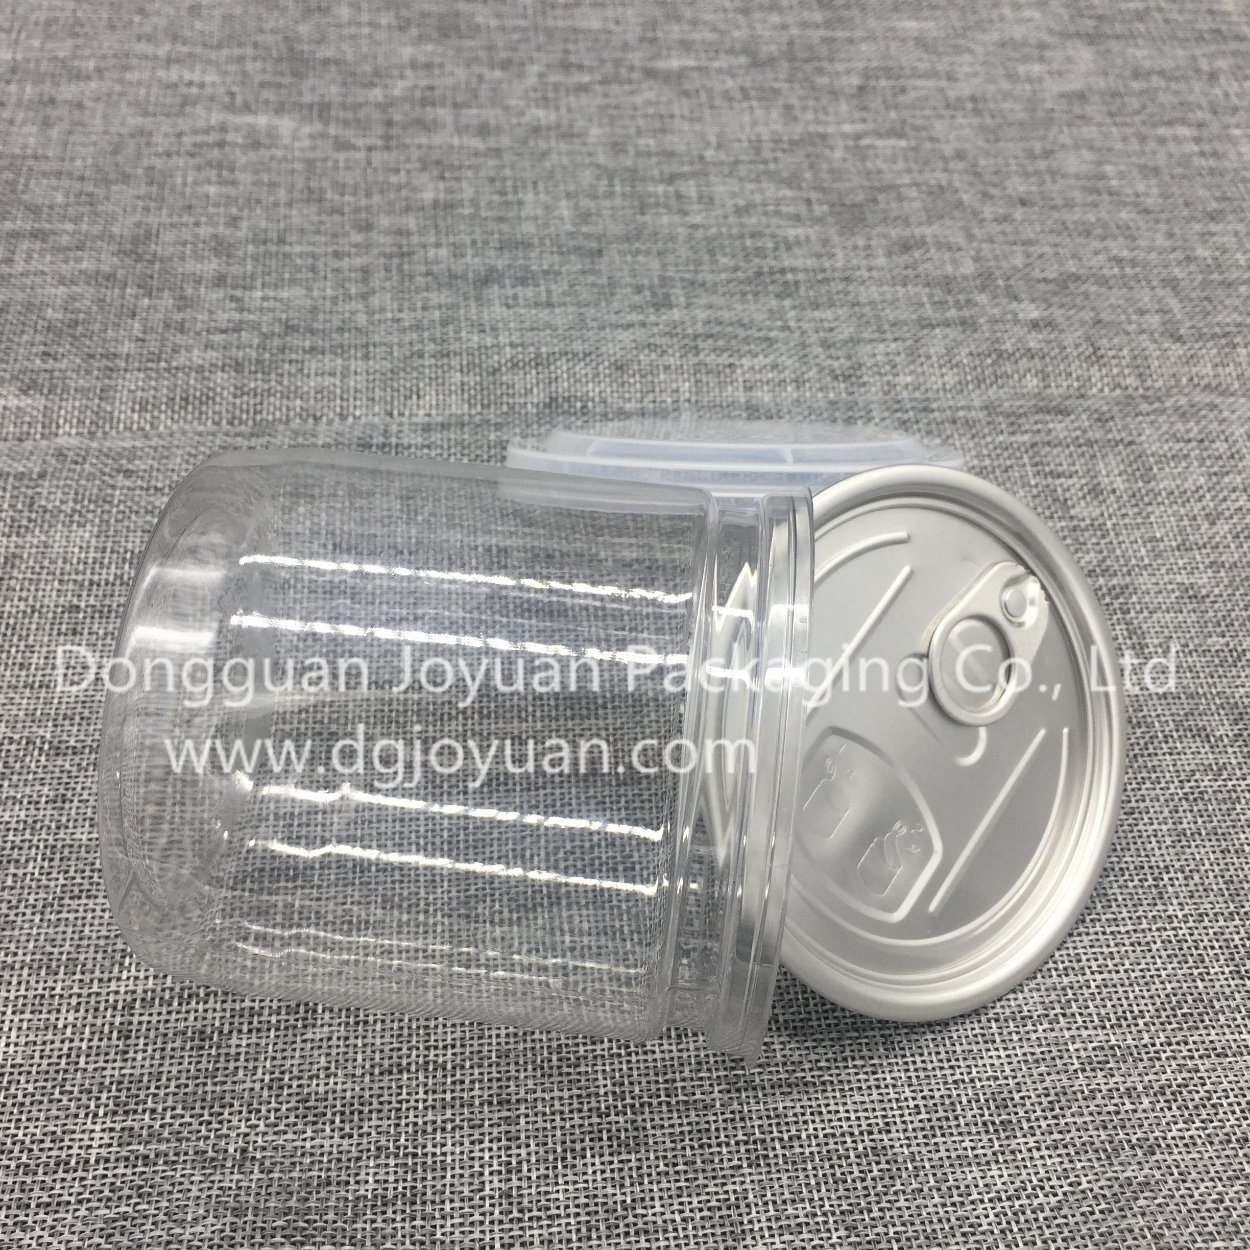 Dried Fruit Packaging Plastic Pet Can with Eoe